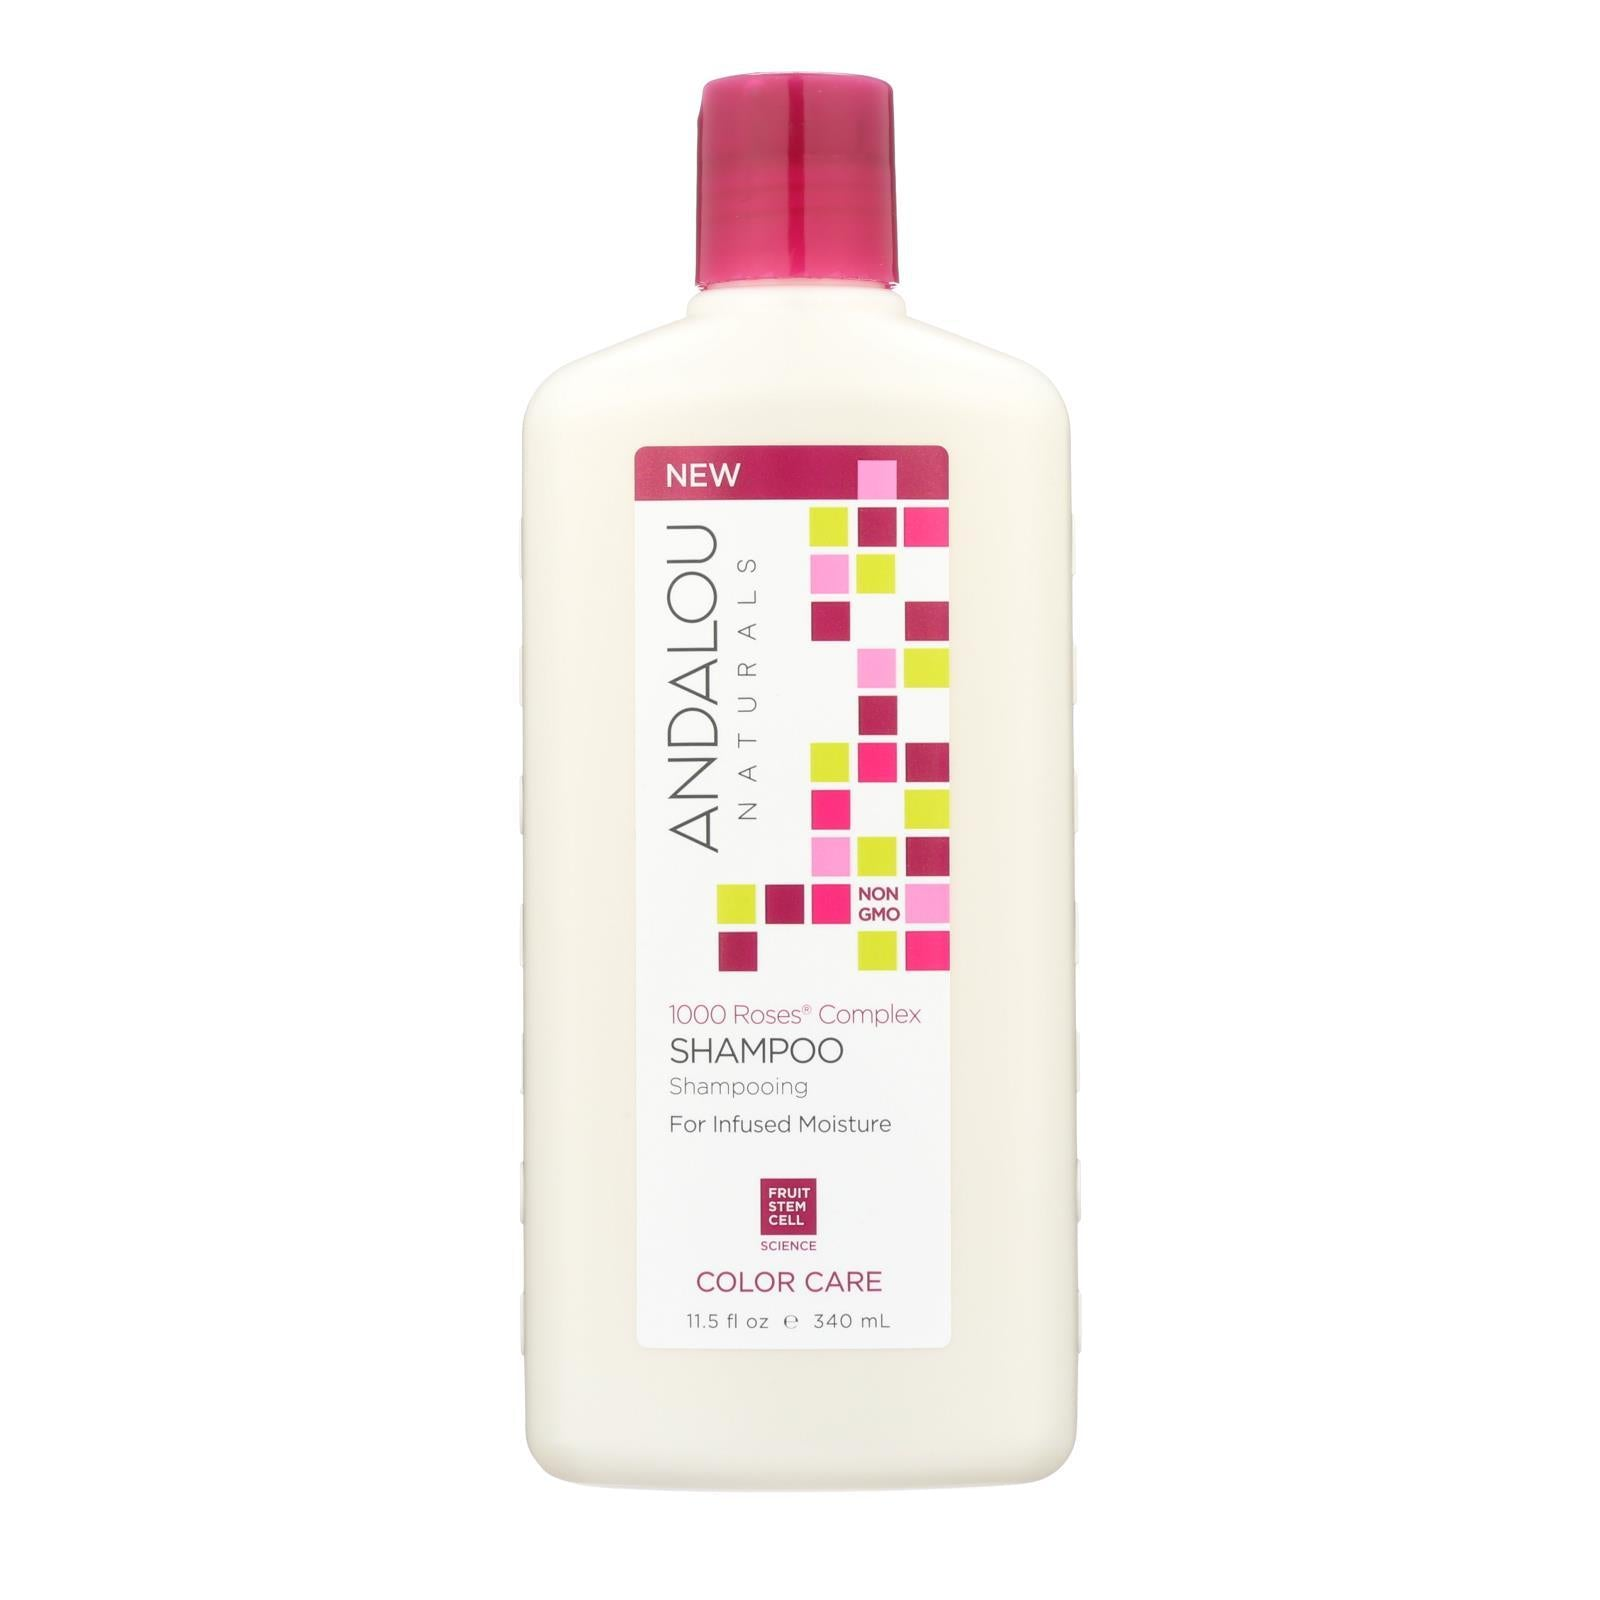 Andalou Naturals Color Care Shampoo -1000 Roses Complex - 11.5 Fl Oz - BeeGreen